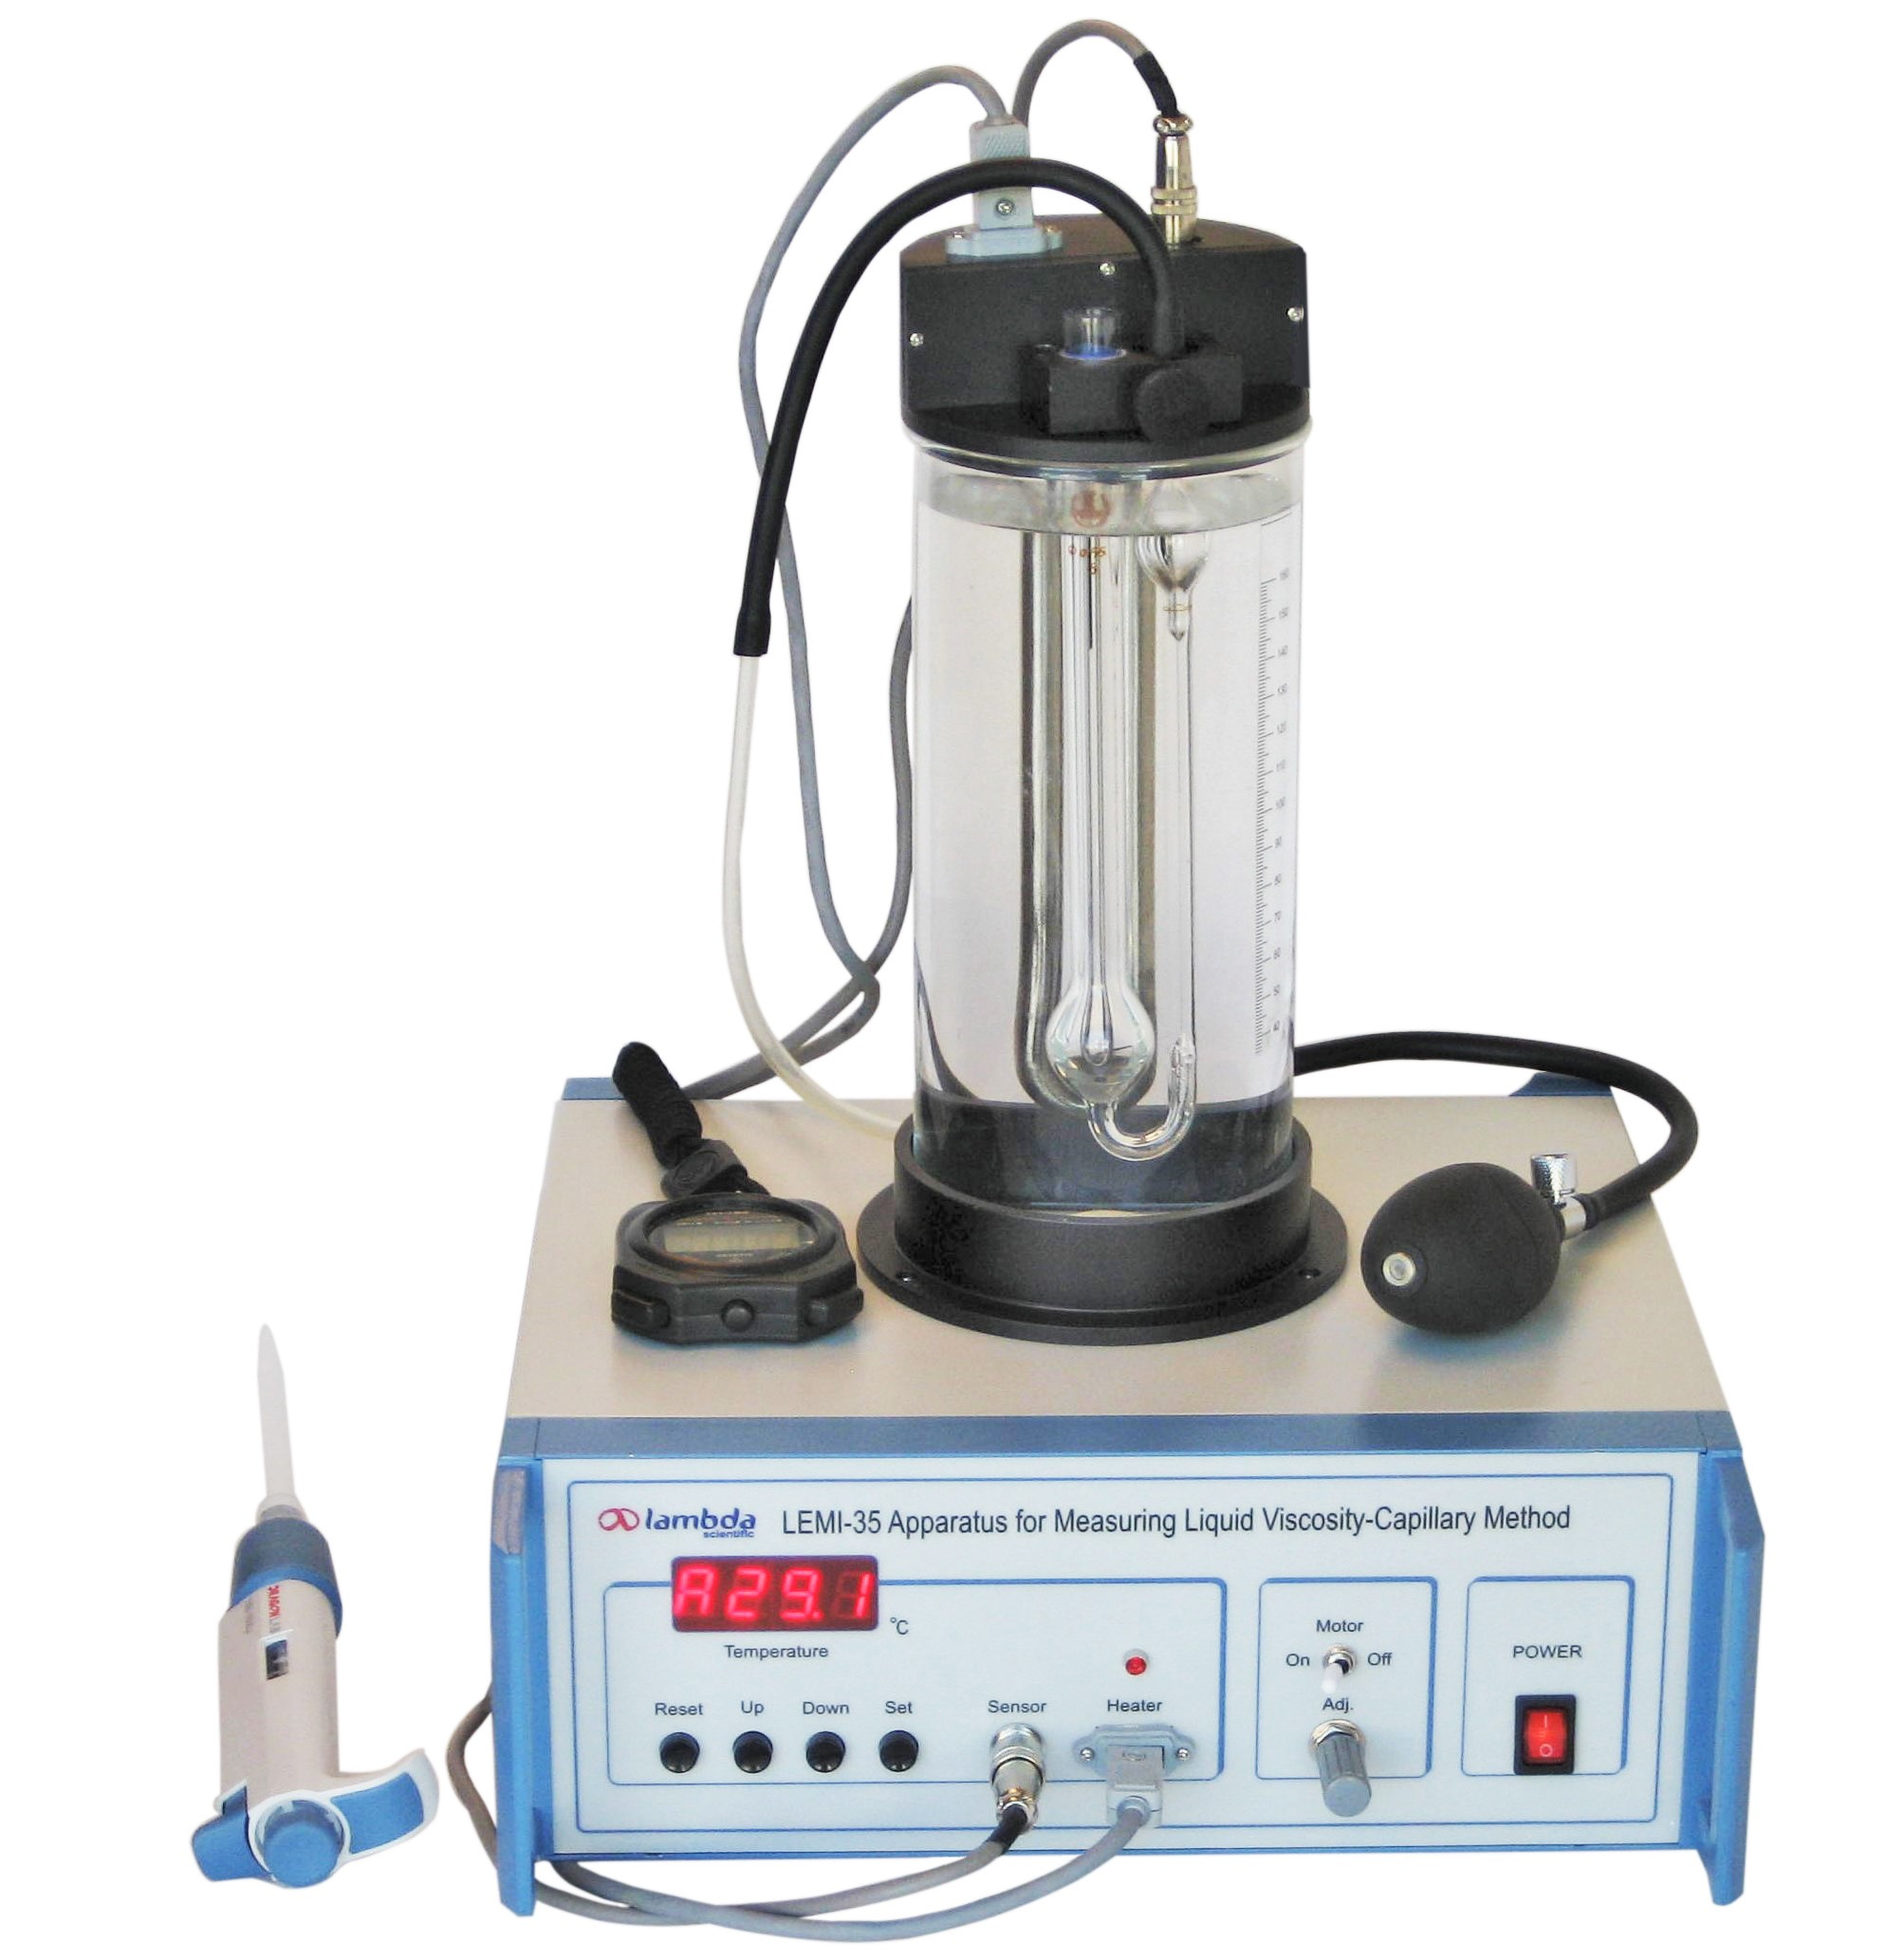 LEMI-35 Measuring Liquid Viscosity - Capillary Method